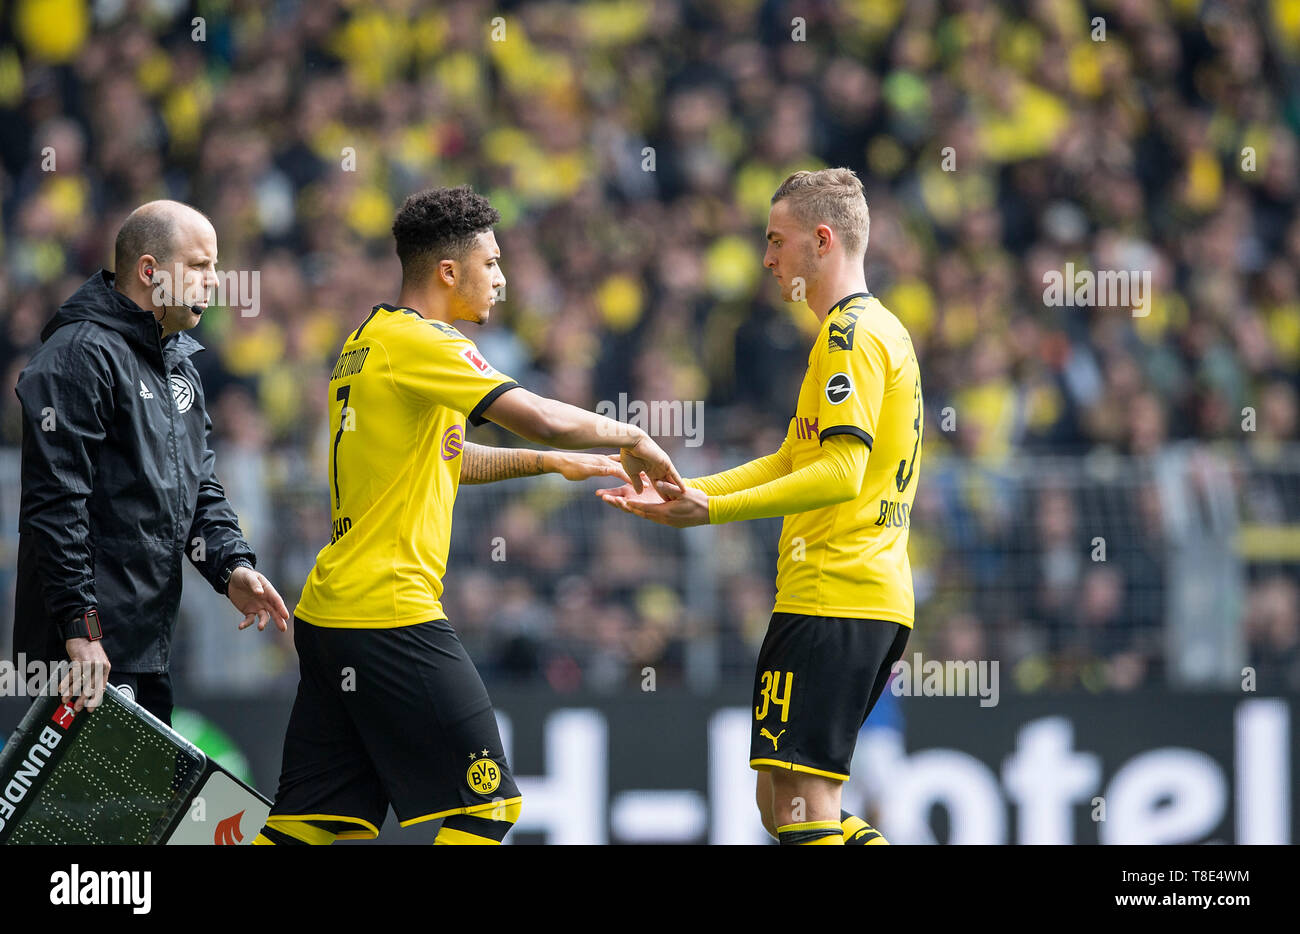 Dortmund, Deutschland. 11th May, 2019. Substitutions Jacob BRUUN LARSEN r. (DO) walks for Jadon SANCHO (DO), substitution. Soccer 1.Bundesliga, 33.matchday, Borussia Dortmund (DO) - Fortuna Dusseldorf (D) 3: 2, 11.05.2019 in Dortmund/Germany. ## DFL regulations prohibit any use of photographs as image sequences and/or quasi-video ## ¬   usage worldwide Credit: dpa/Alamy Live News - Stock Image